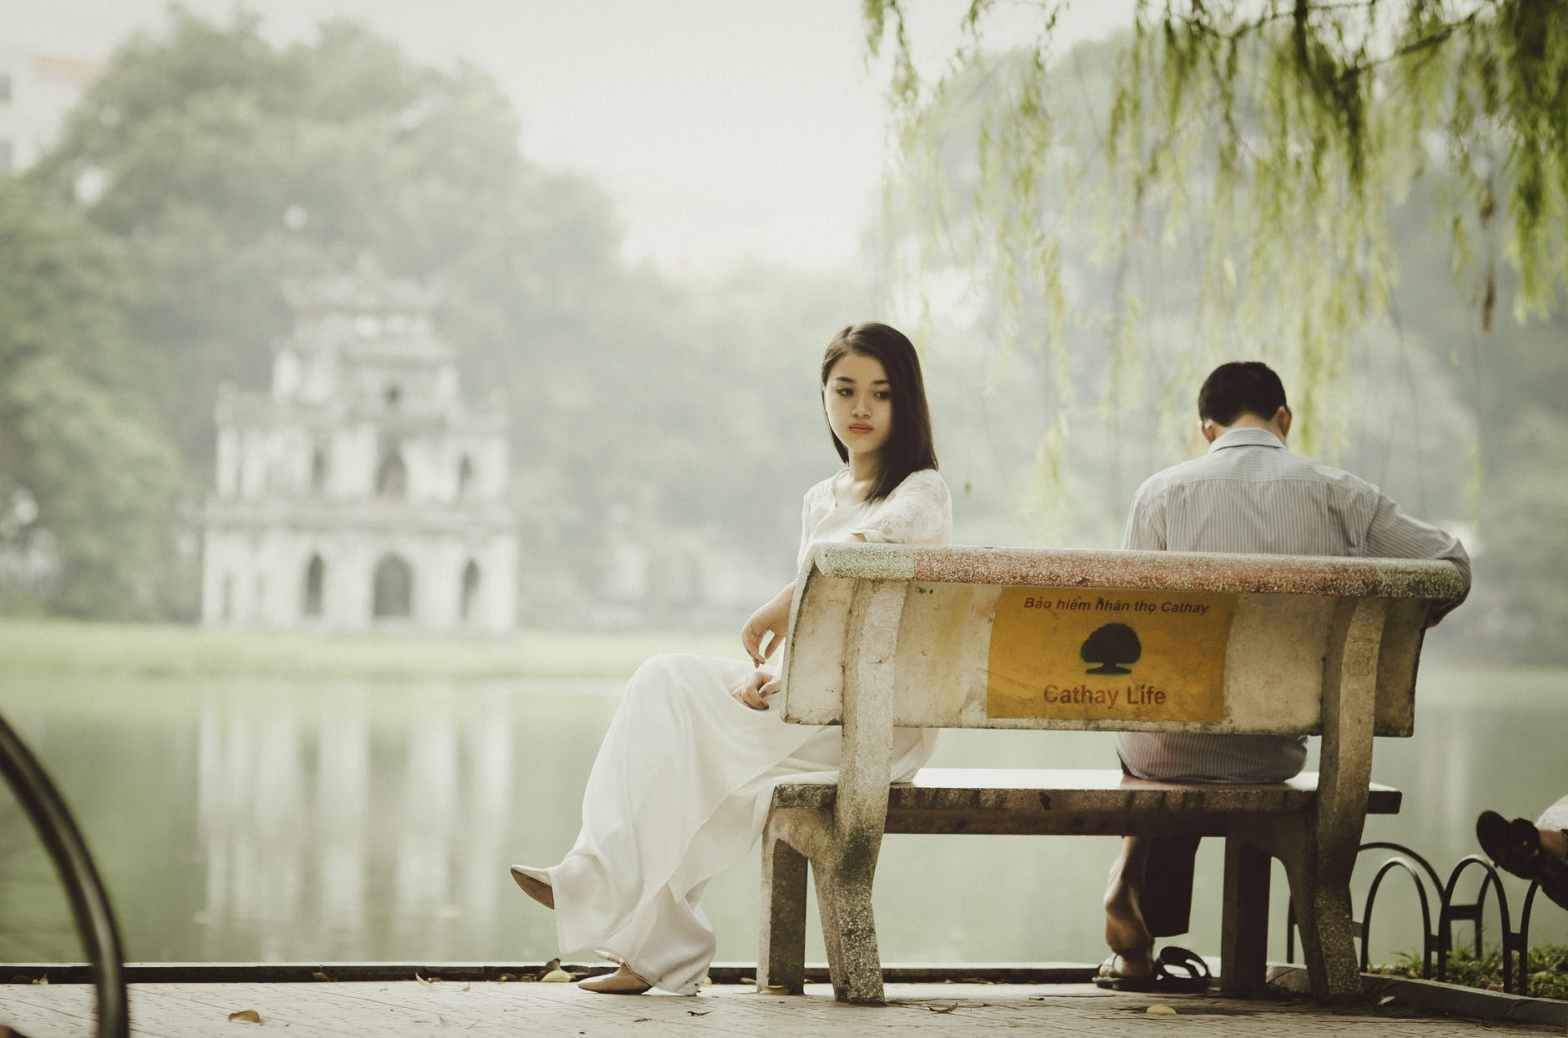 difficult relationship - a couple looking estranged on a bench